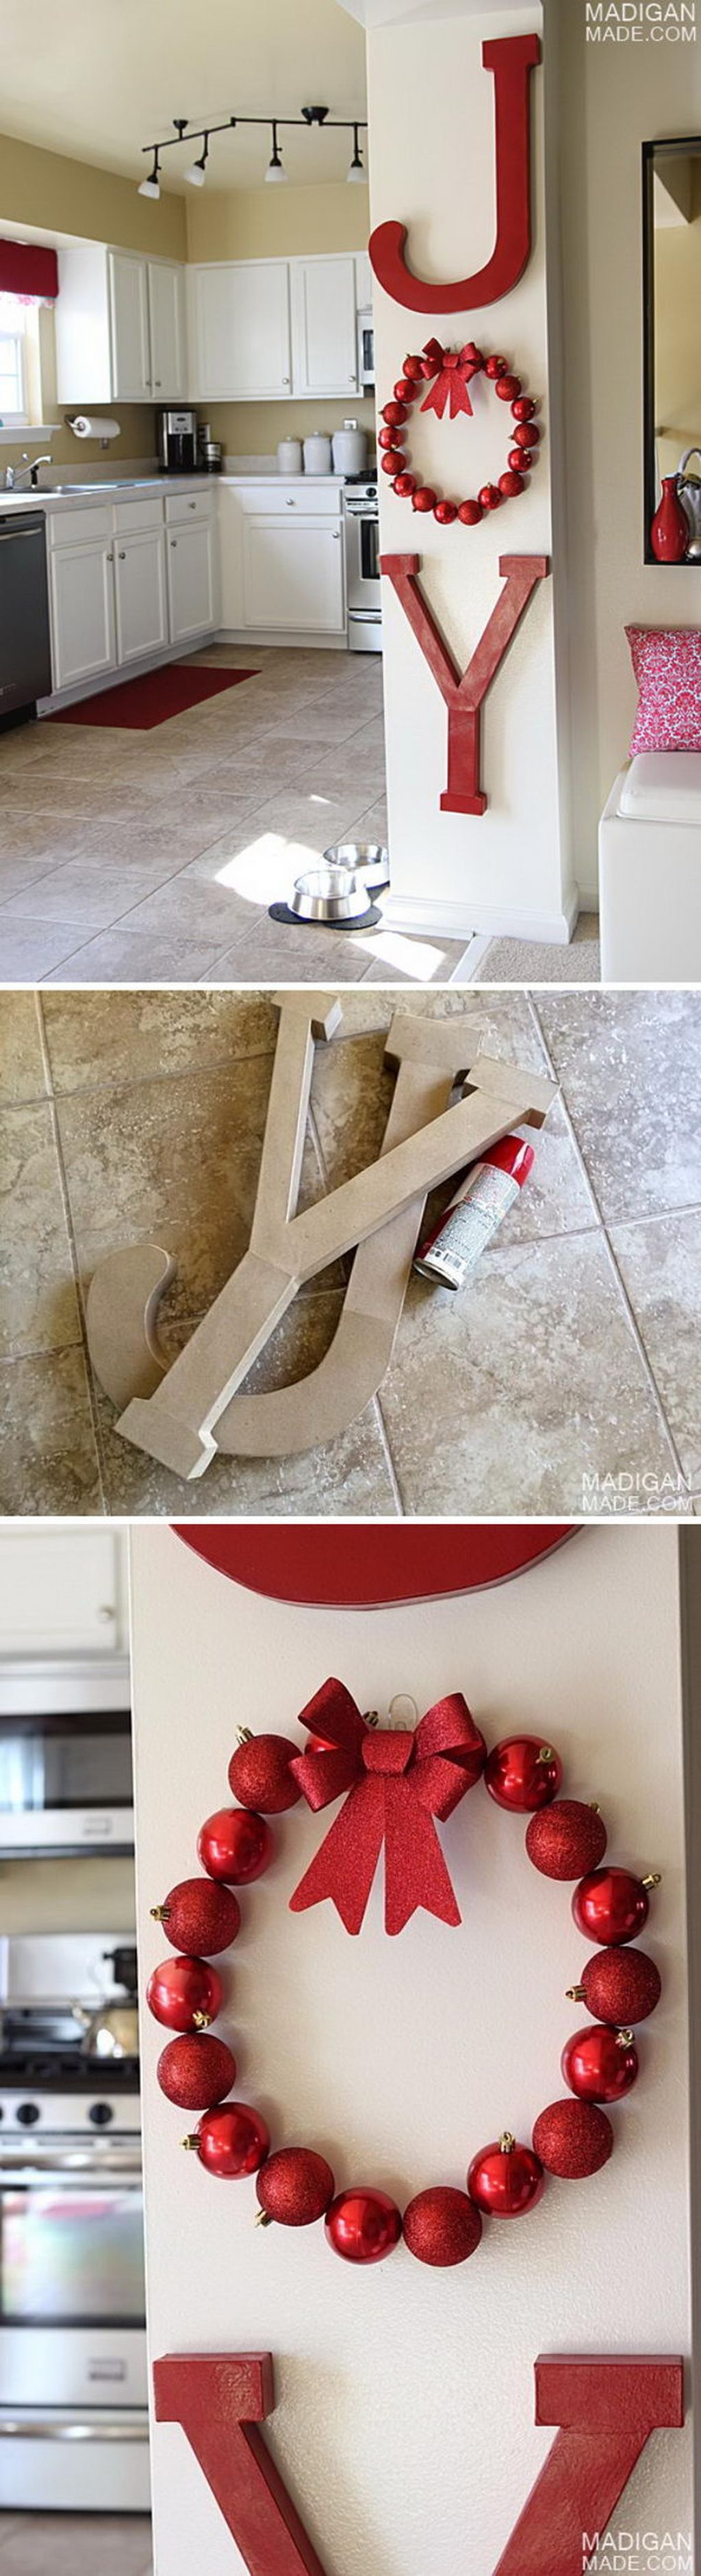 awesome 90 adorable rustic christmas kitchen decoration ideas httpshomedecorishcom2017101190 adorable rustic christmas kitchen decoration ideas - Pinterest Christmas Kitchen Decorating Ideas